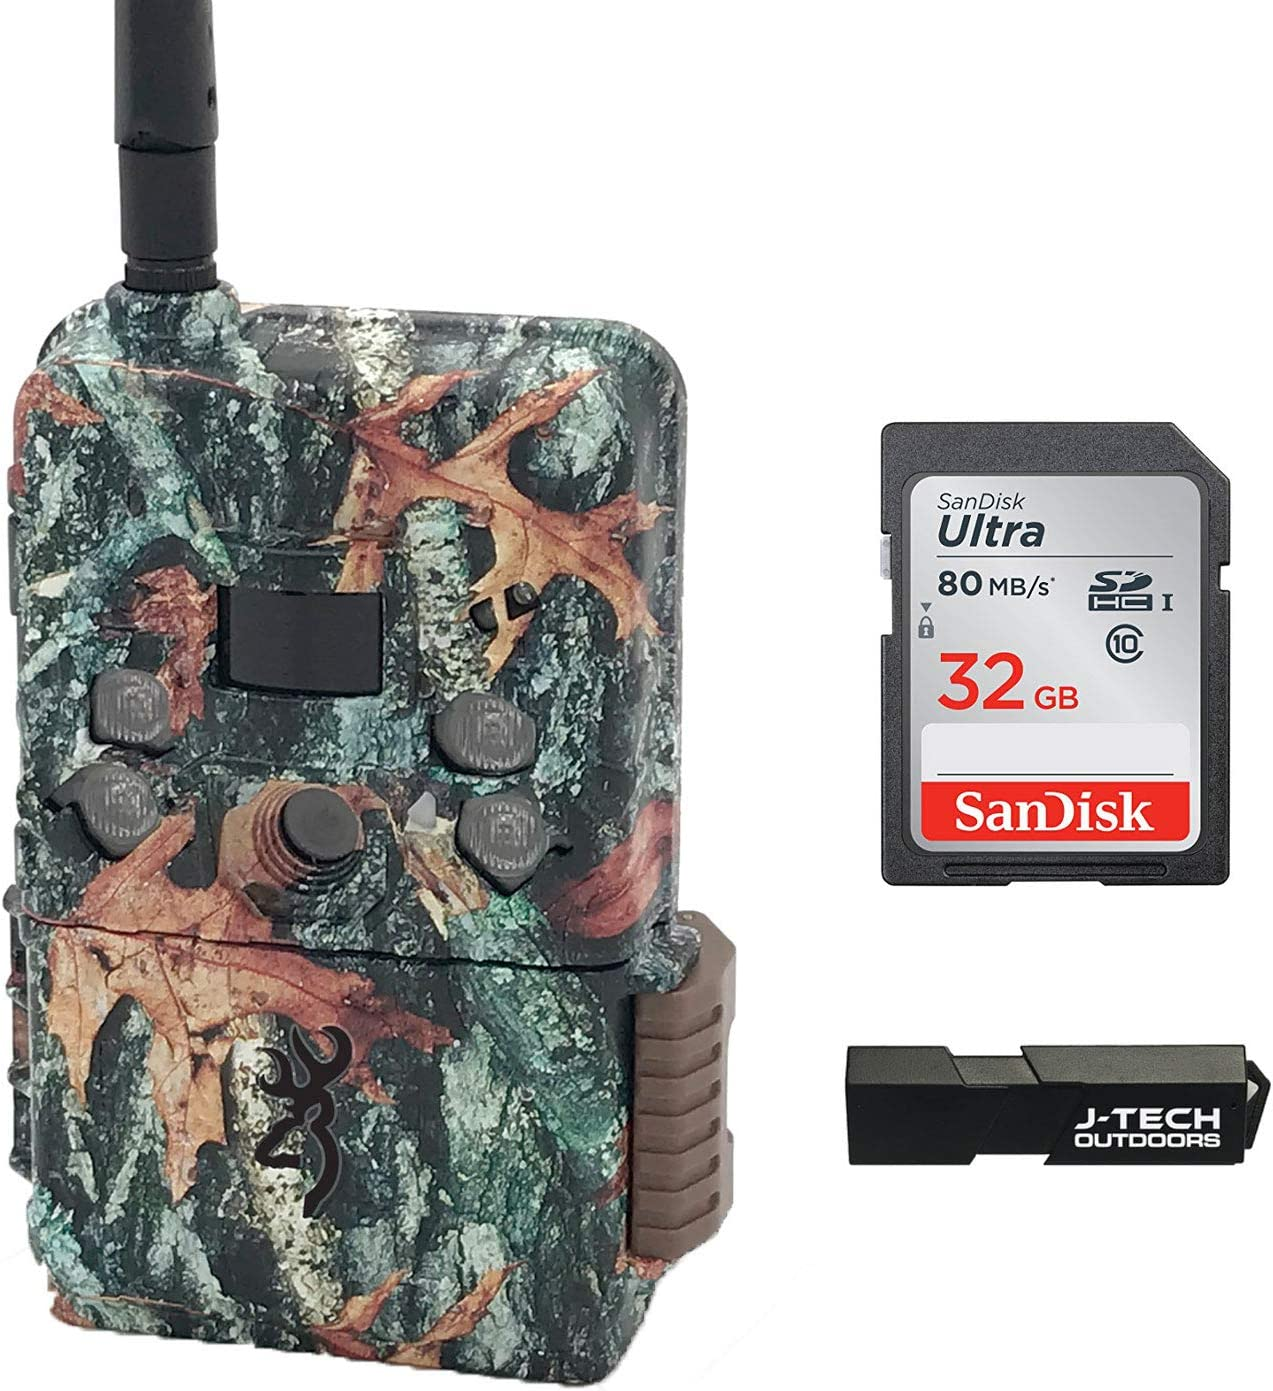 Browning Defender Spring new work Wireless Pro Scout Luxury goods Trail Camera Cellular Game